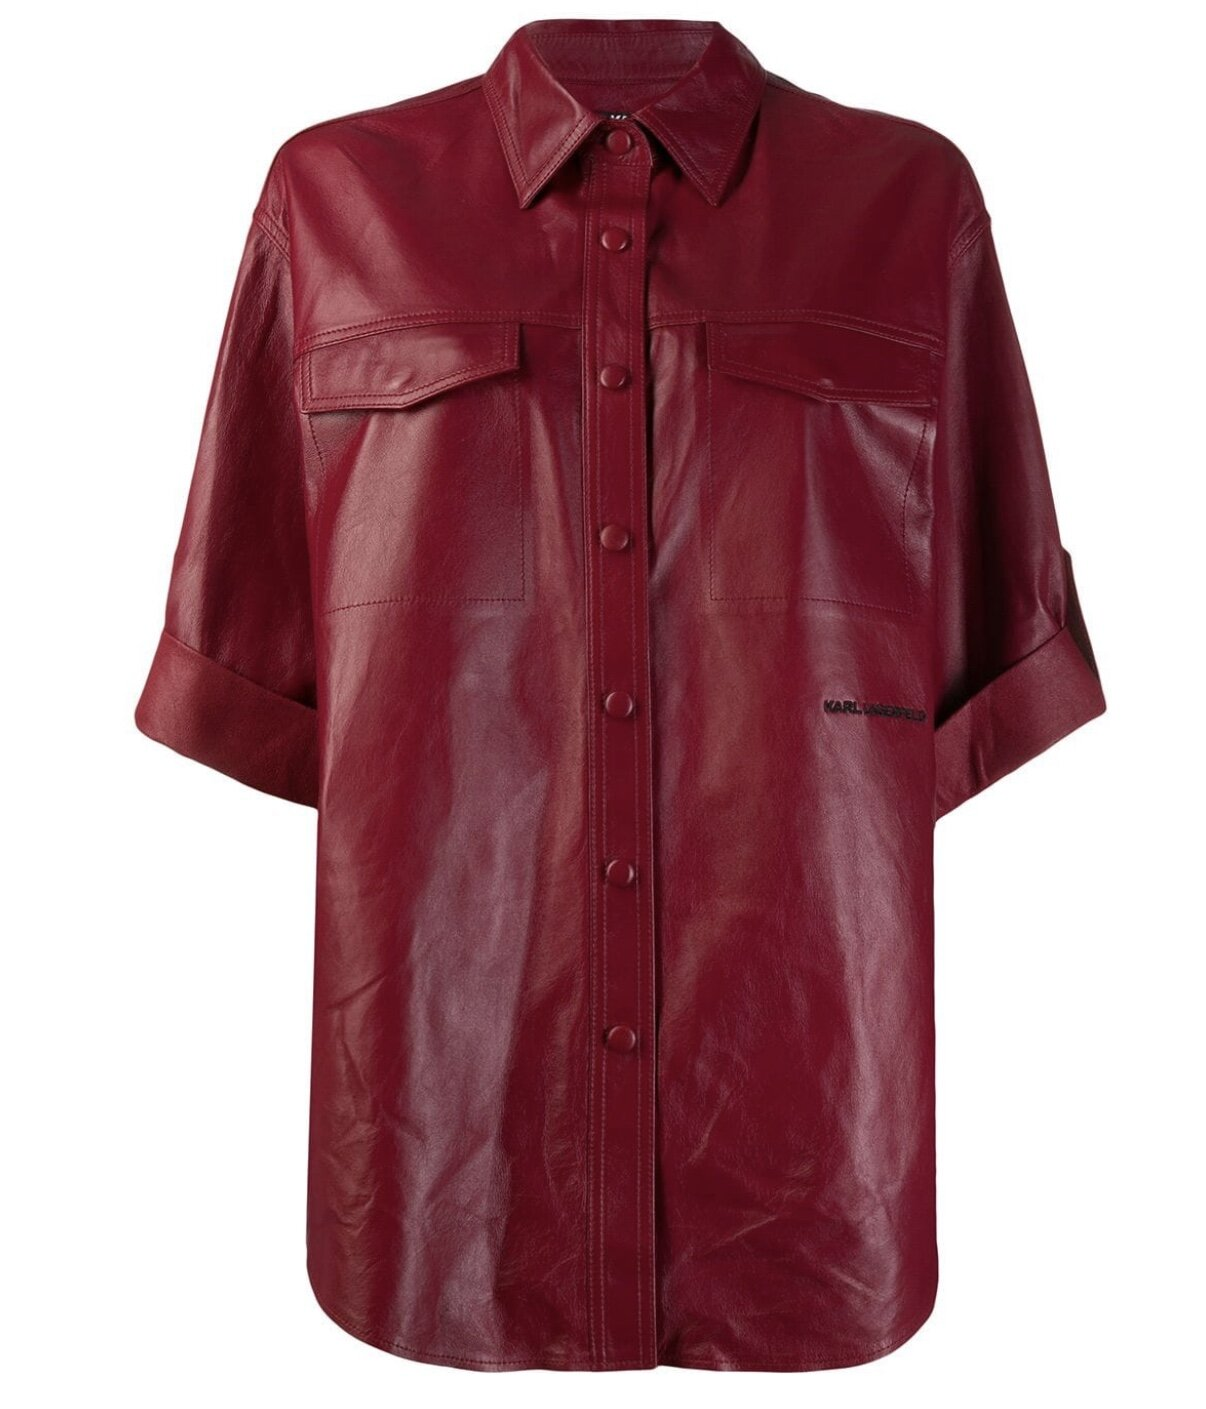 KARL LAGERFIELD - LEATHER SHIRT